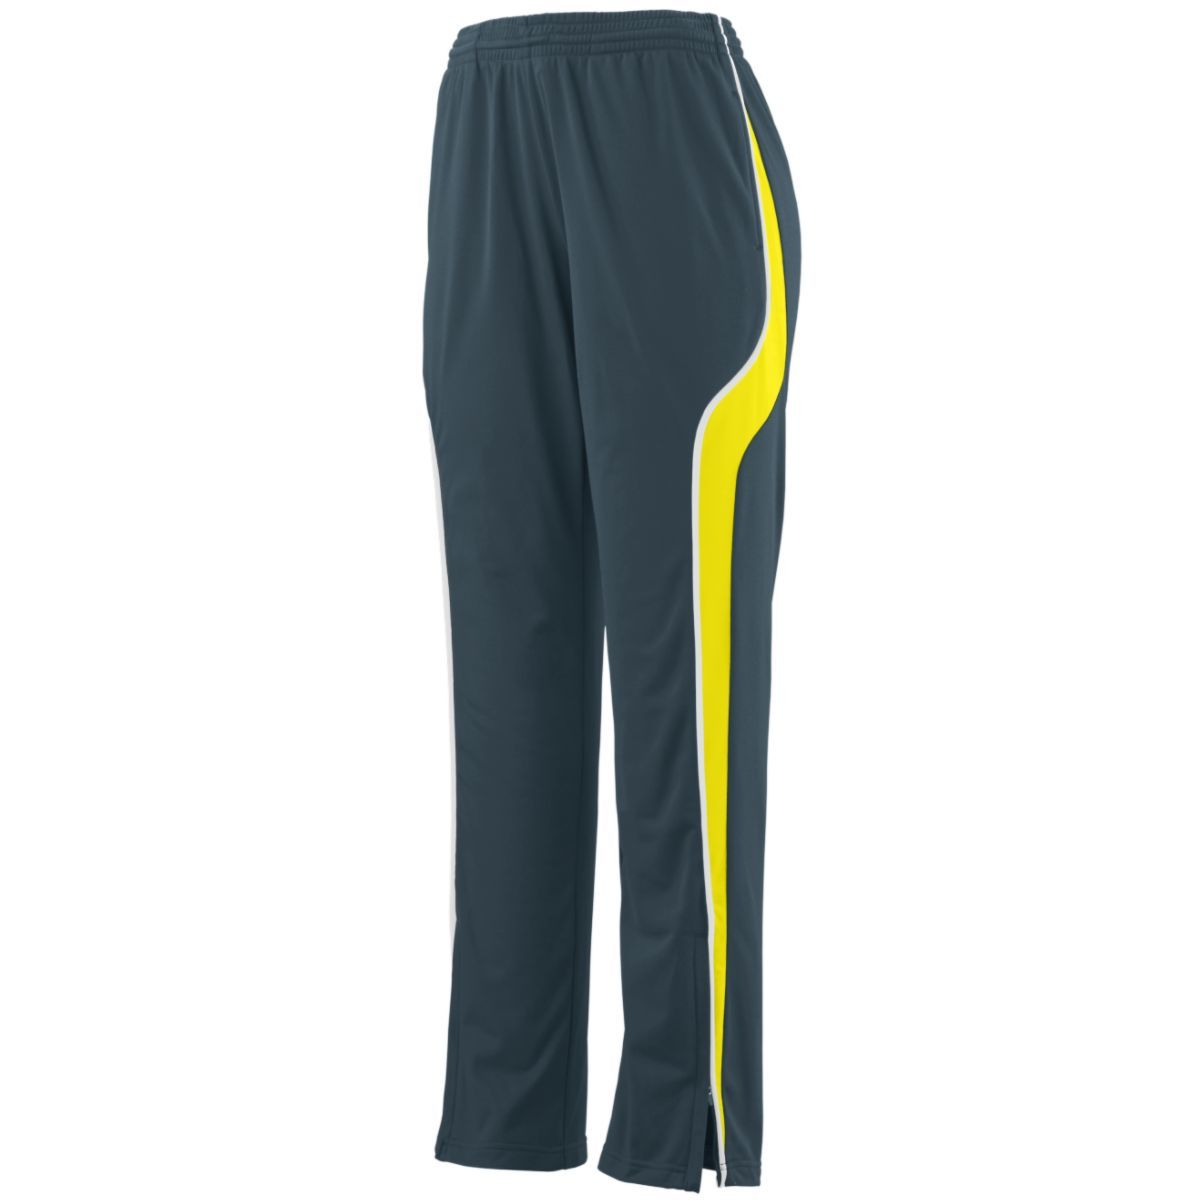 Ladies Rival Pant - SLATE/POWER YELLOW/WHITE